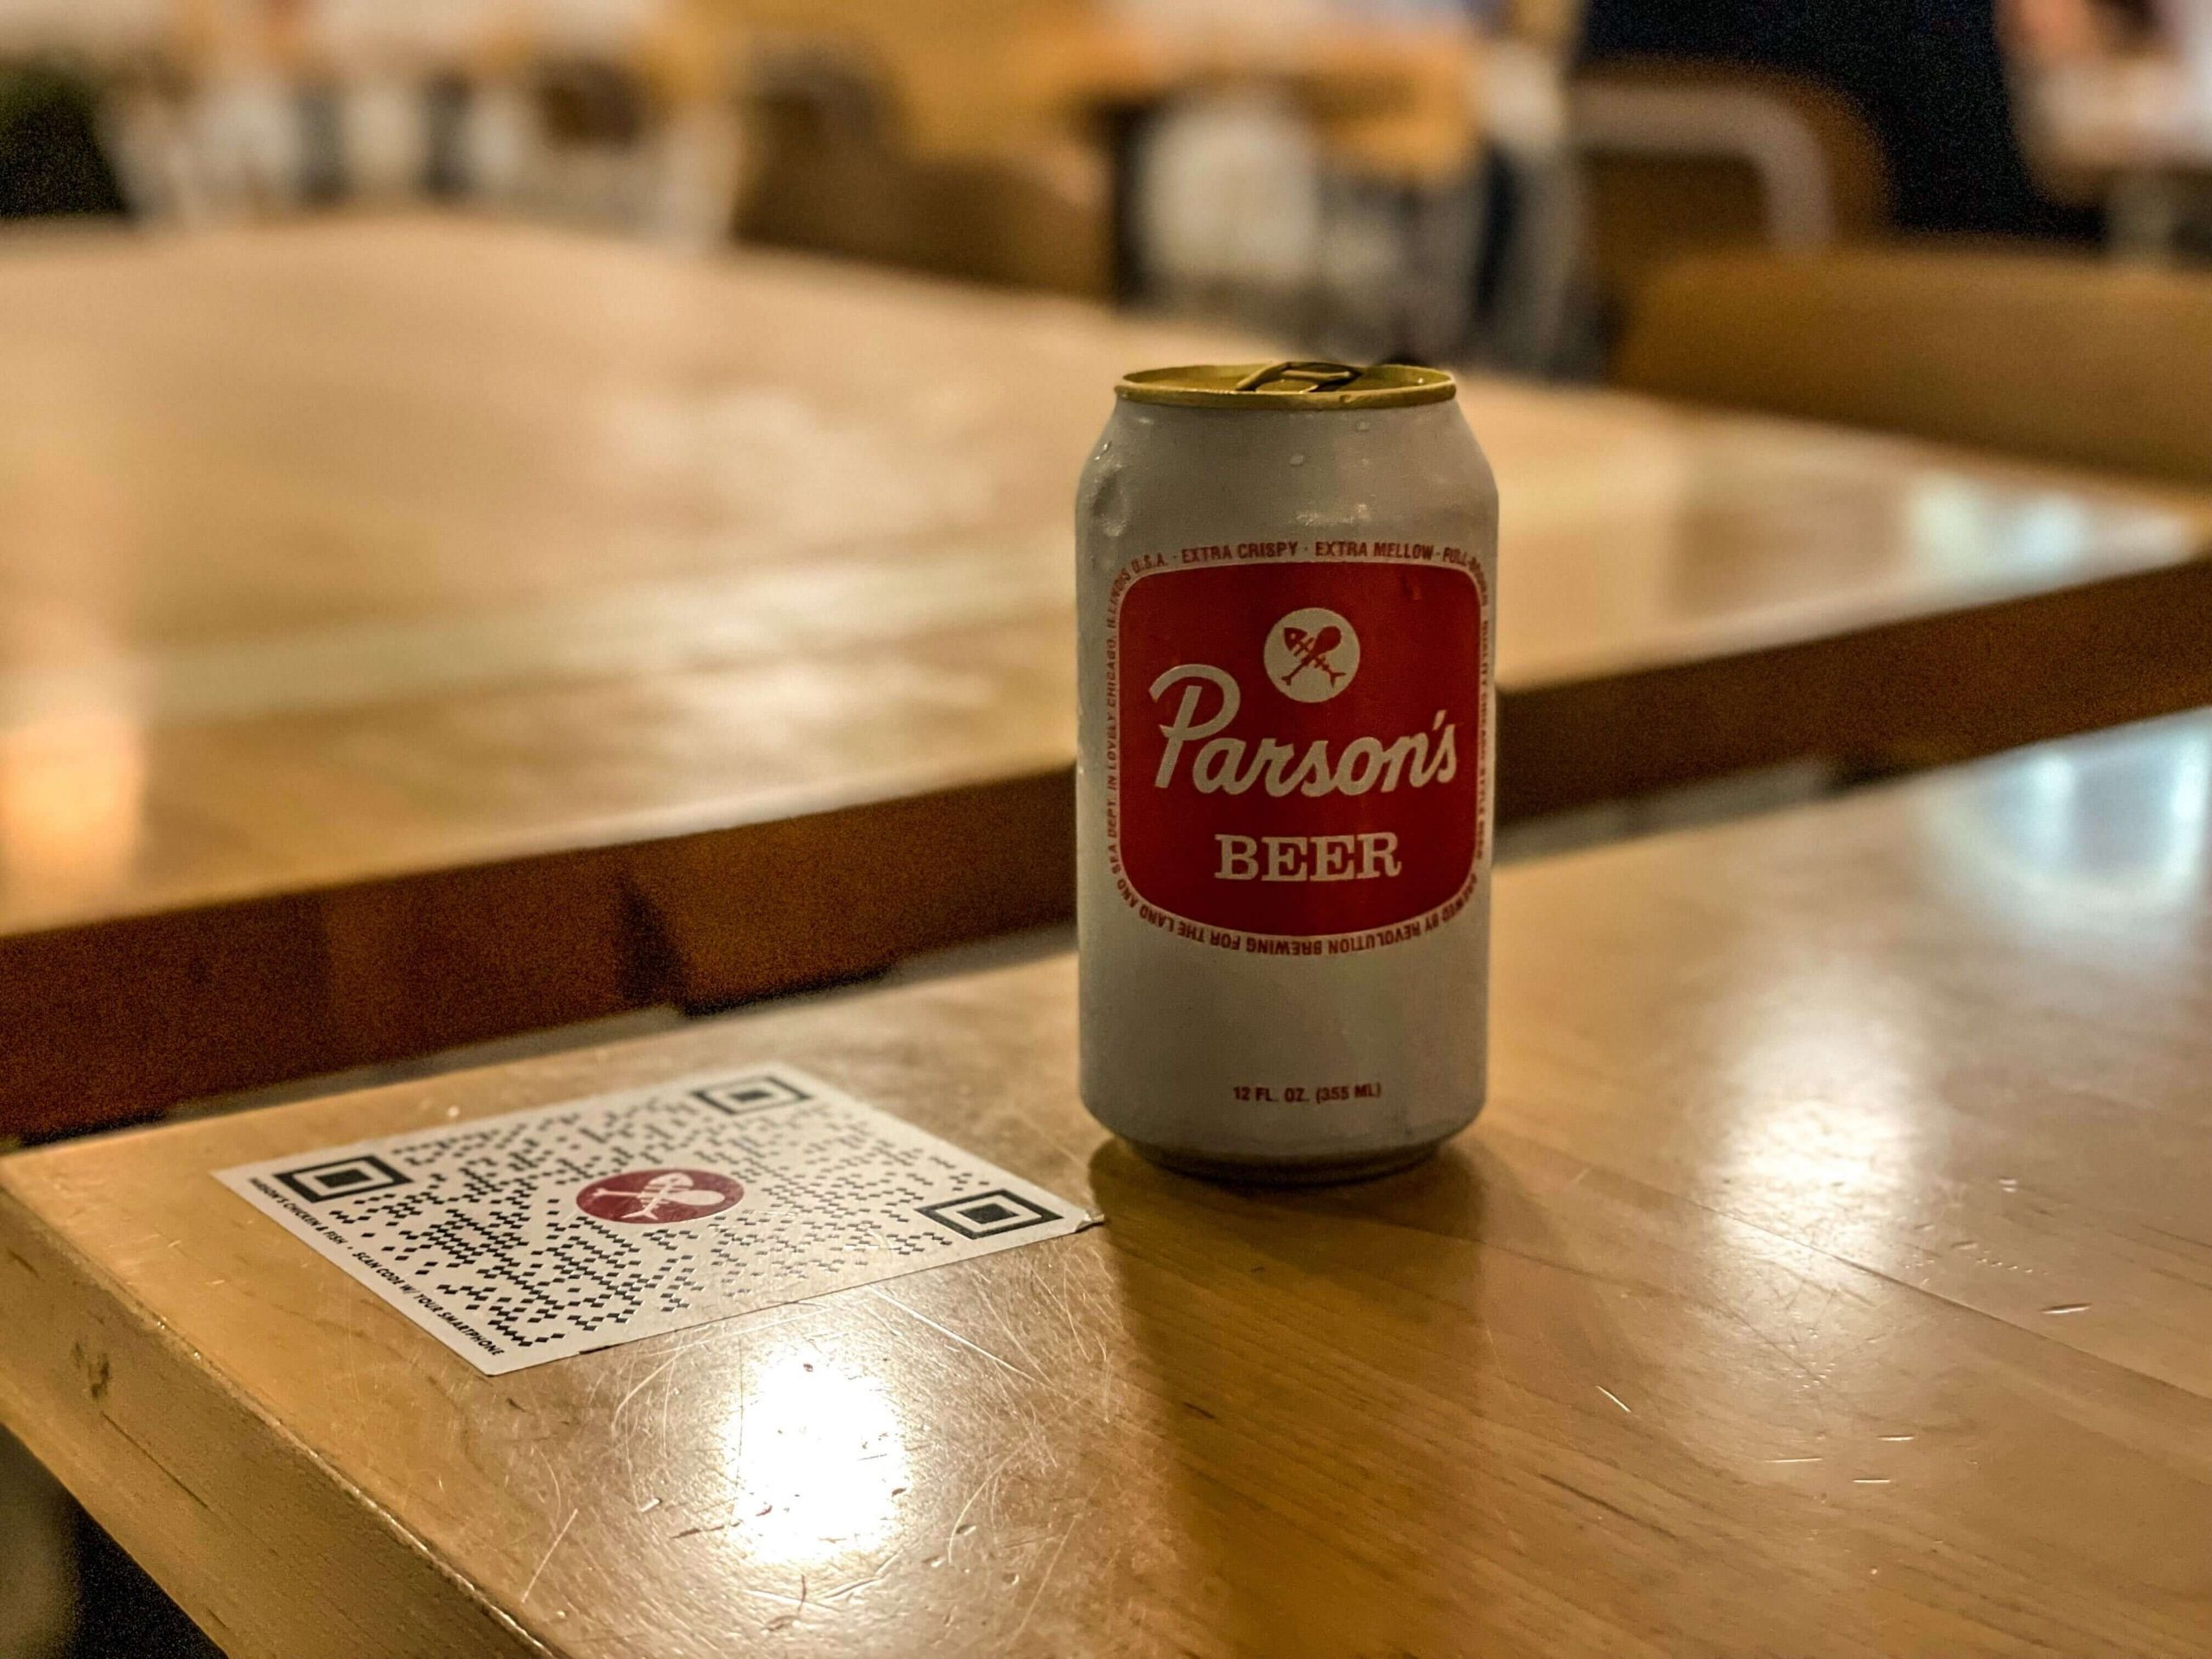 Parson's Beer